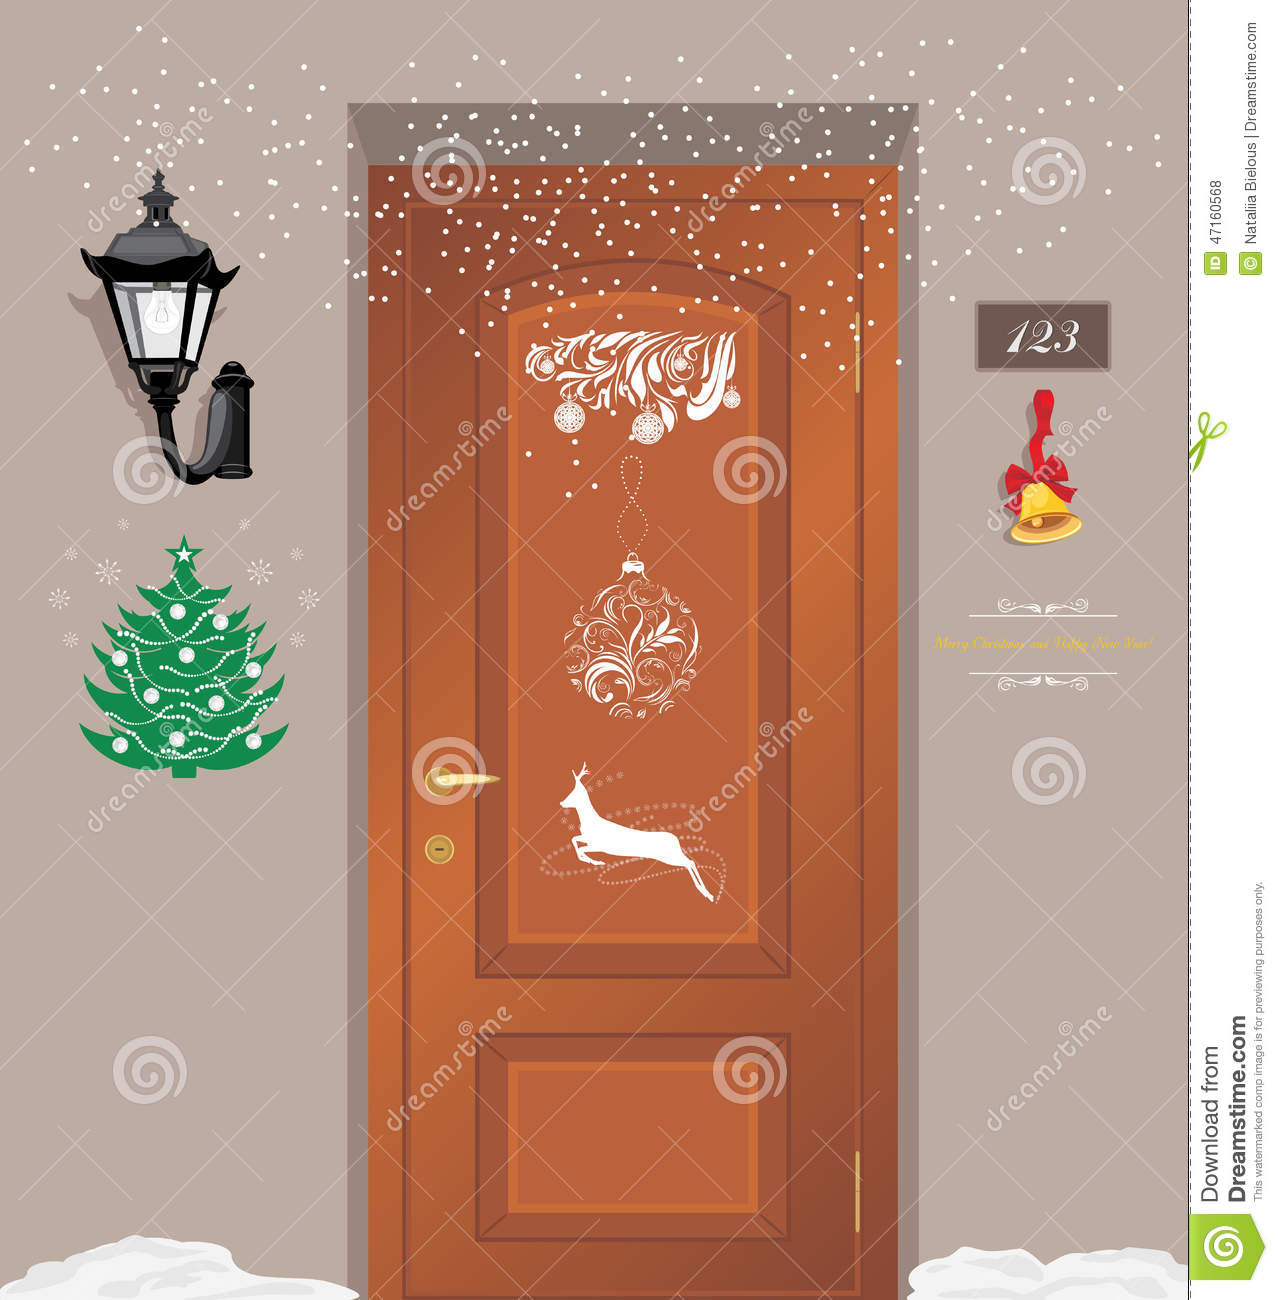 Electric Dreams Merchandise Ask Answer Wiring Diagram Printed Circuit Board Stock Images Image 7251734 Door Christmas Decoration Vector 47160568 Actress 1984